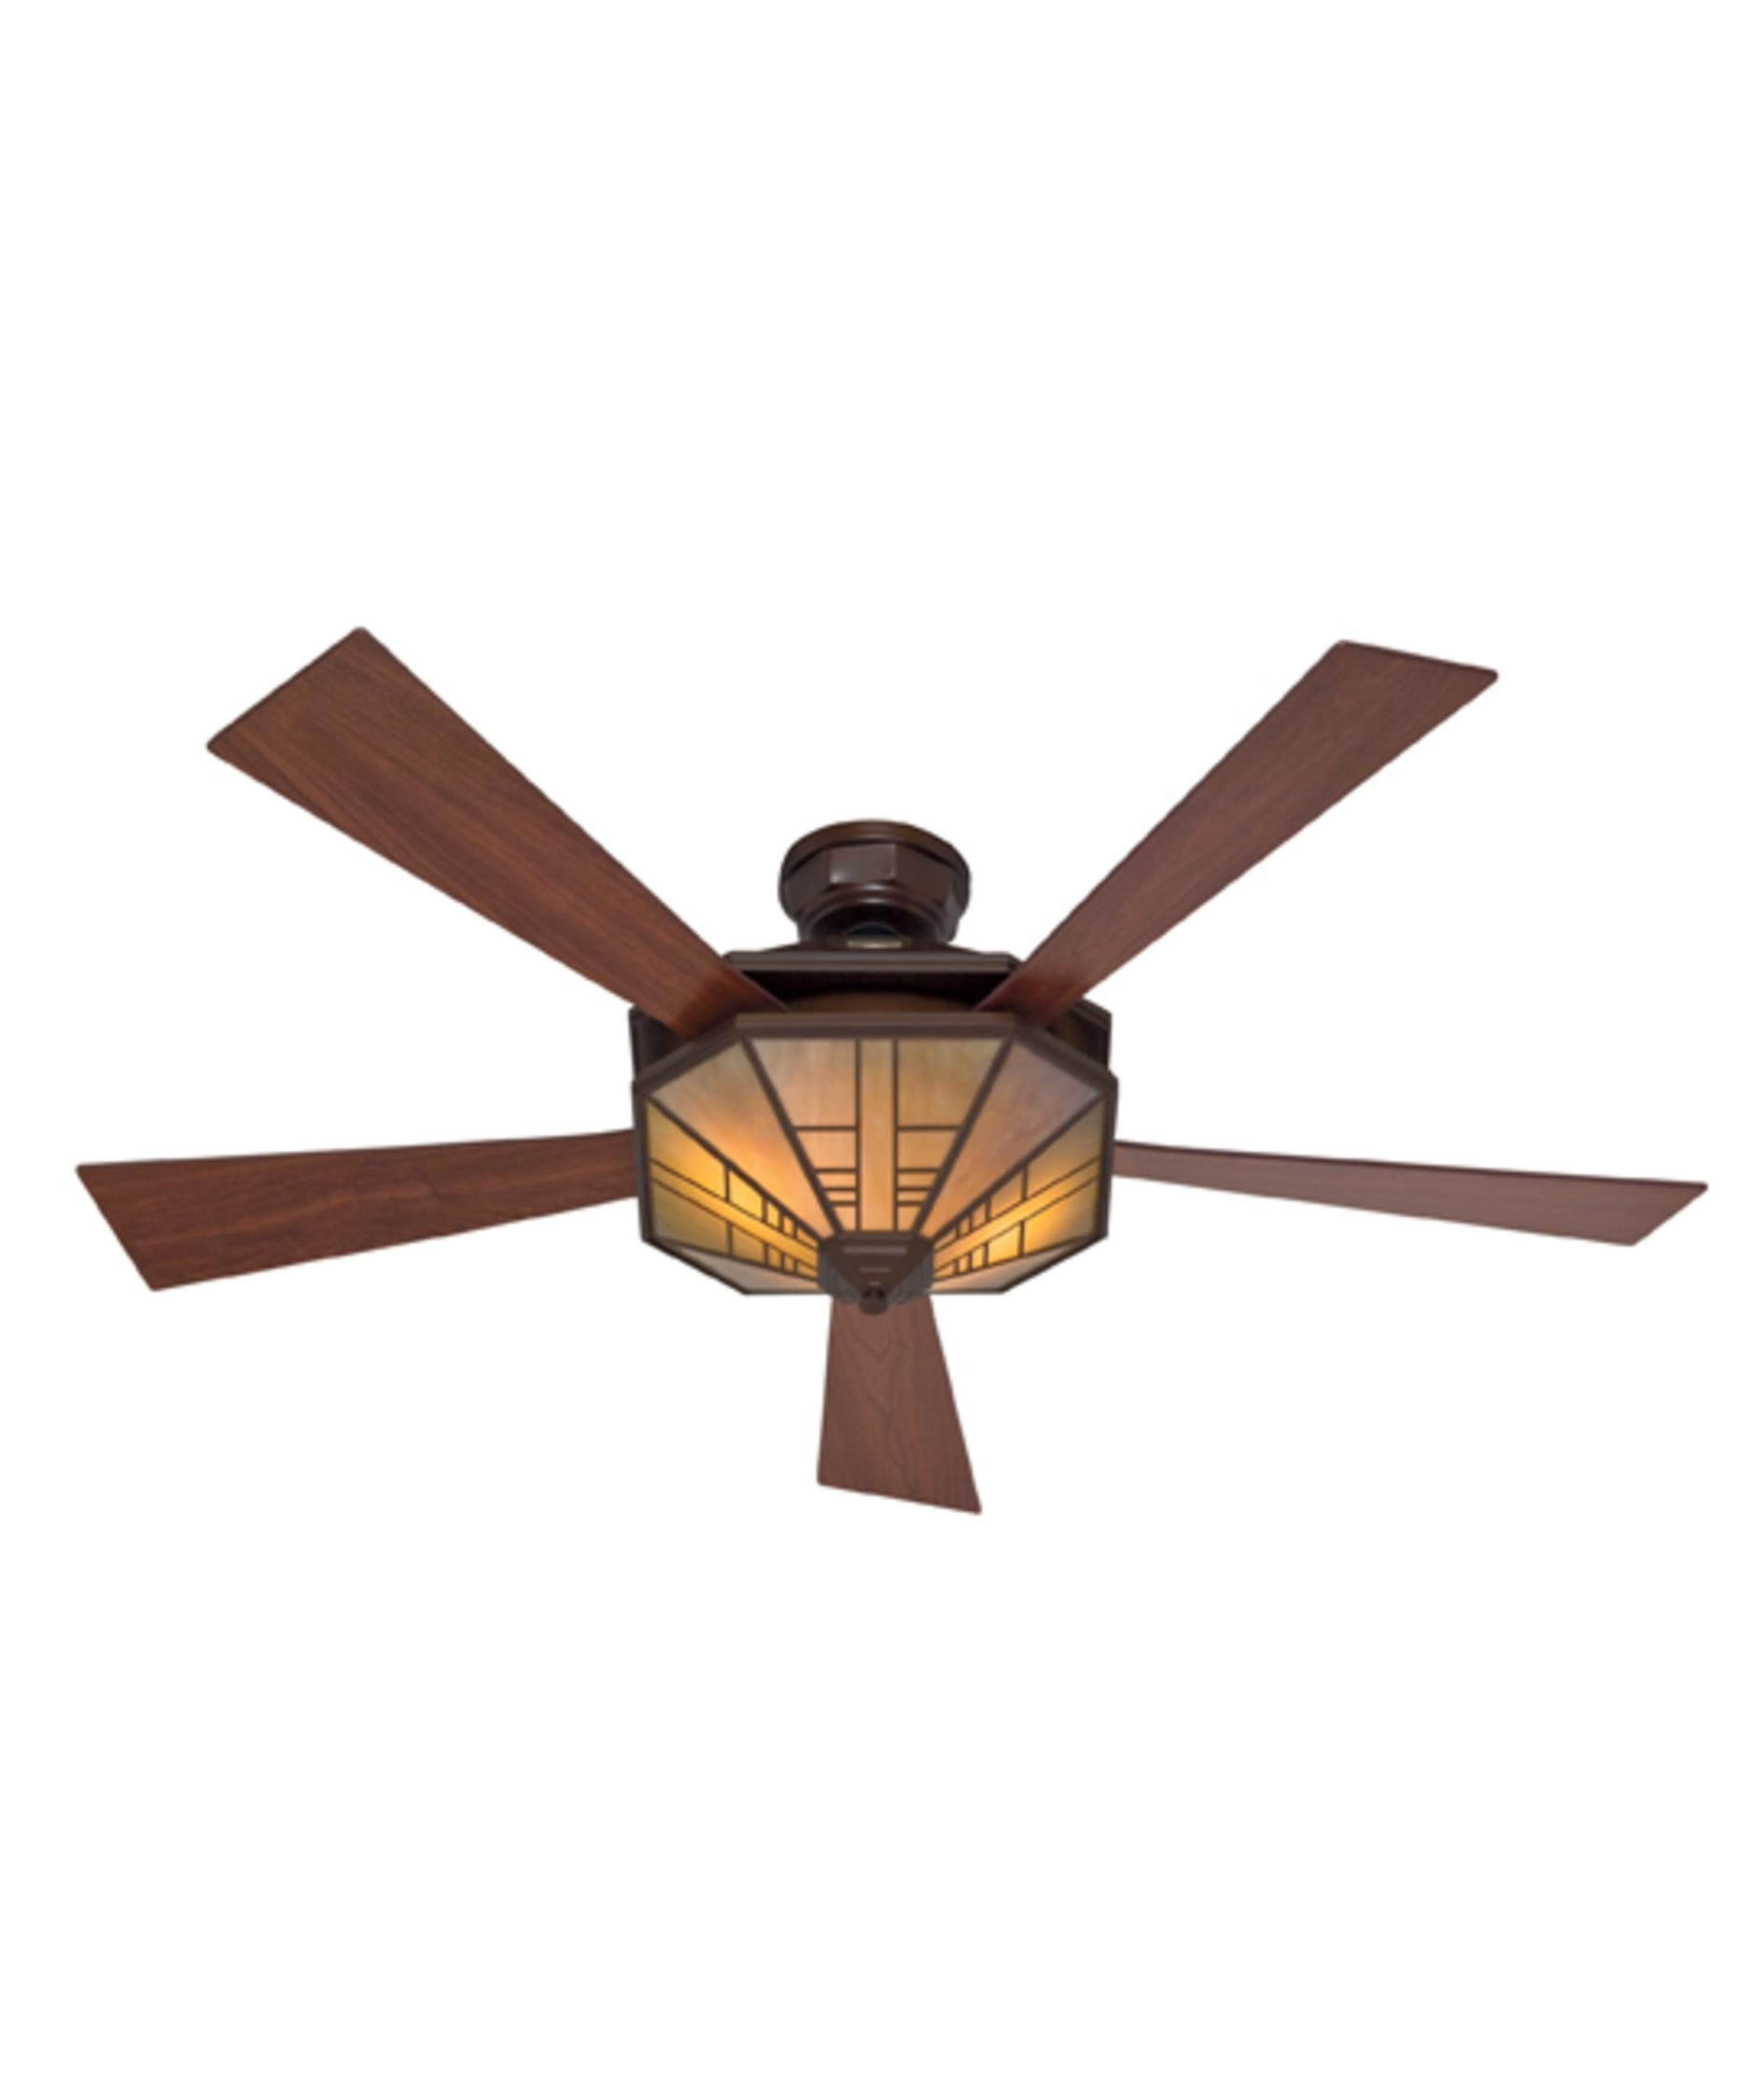 Mission Style Outdoor Ceiling Fans With Lights Intended For Most Up To Date Hunter Fan 21978 1912 Mission 54 Inch 5 Blade Ceiling Fan (View 6 of 20)